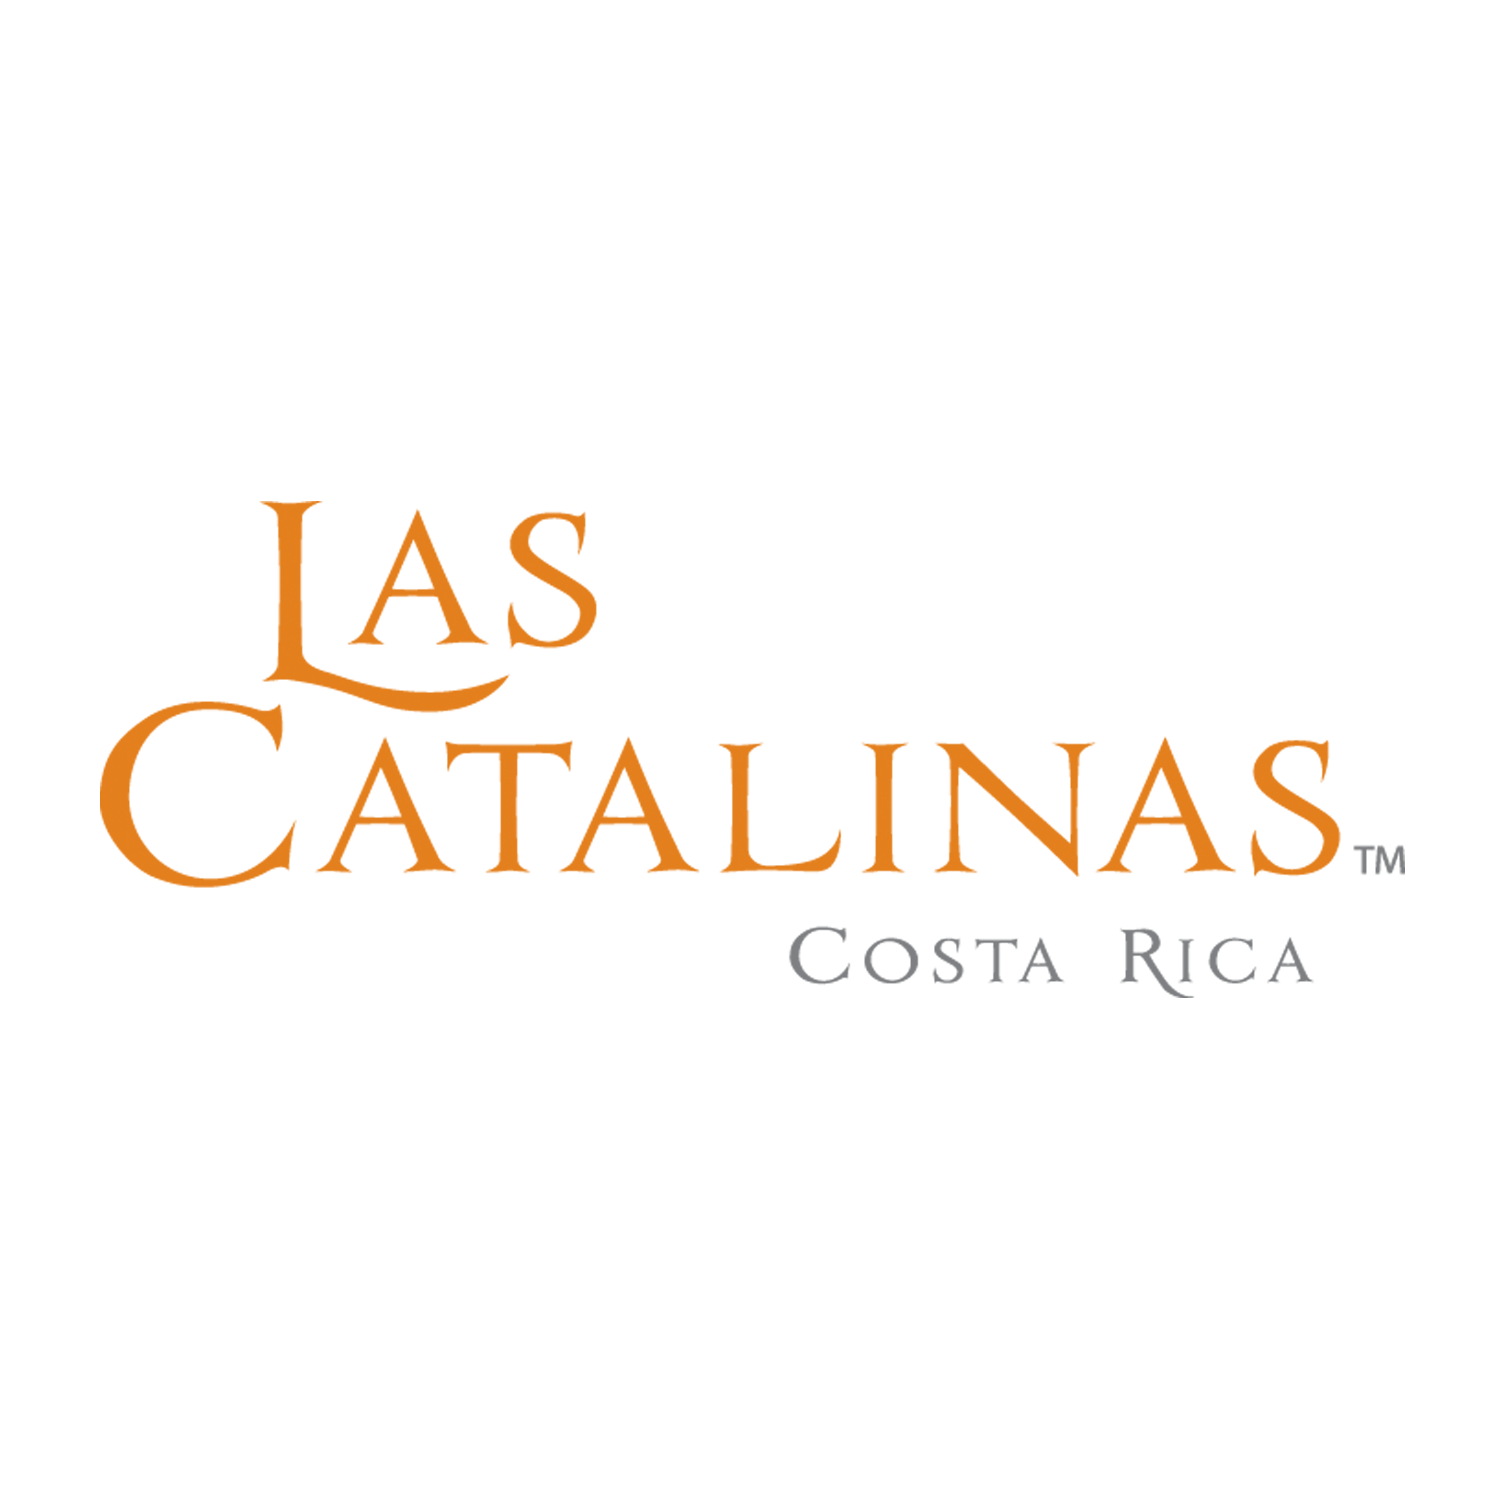 Las Catalinas Logo Design